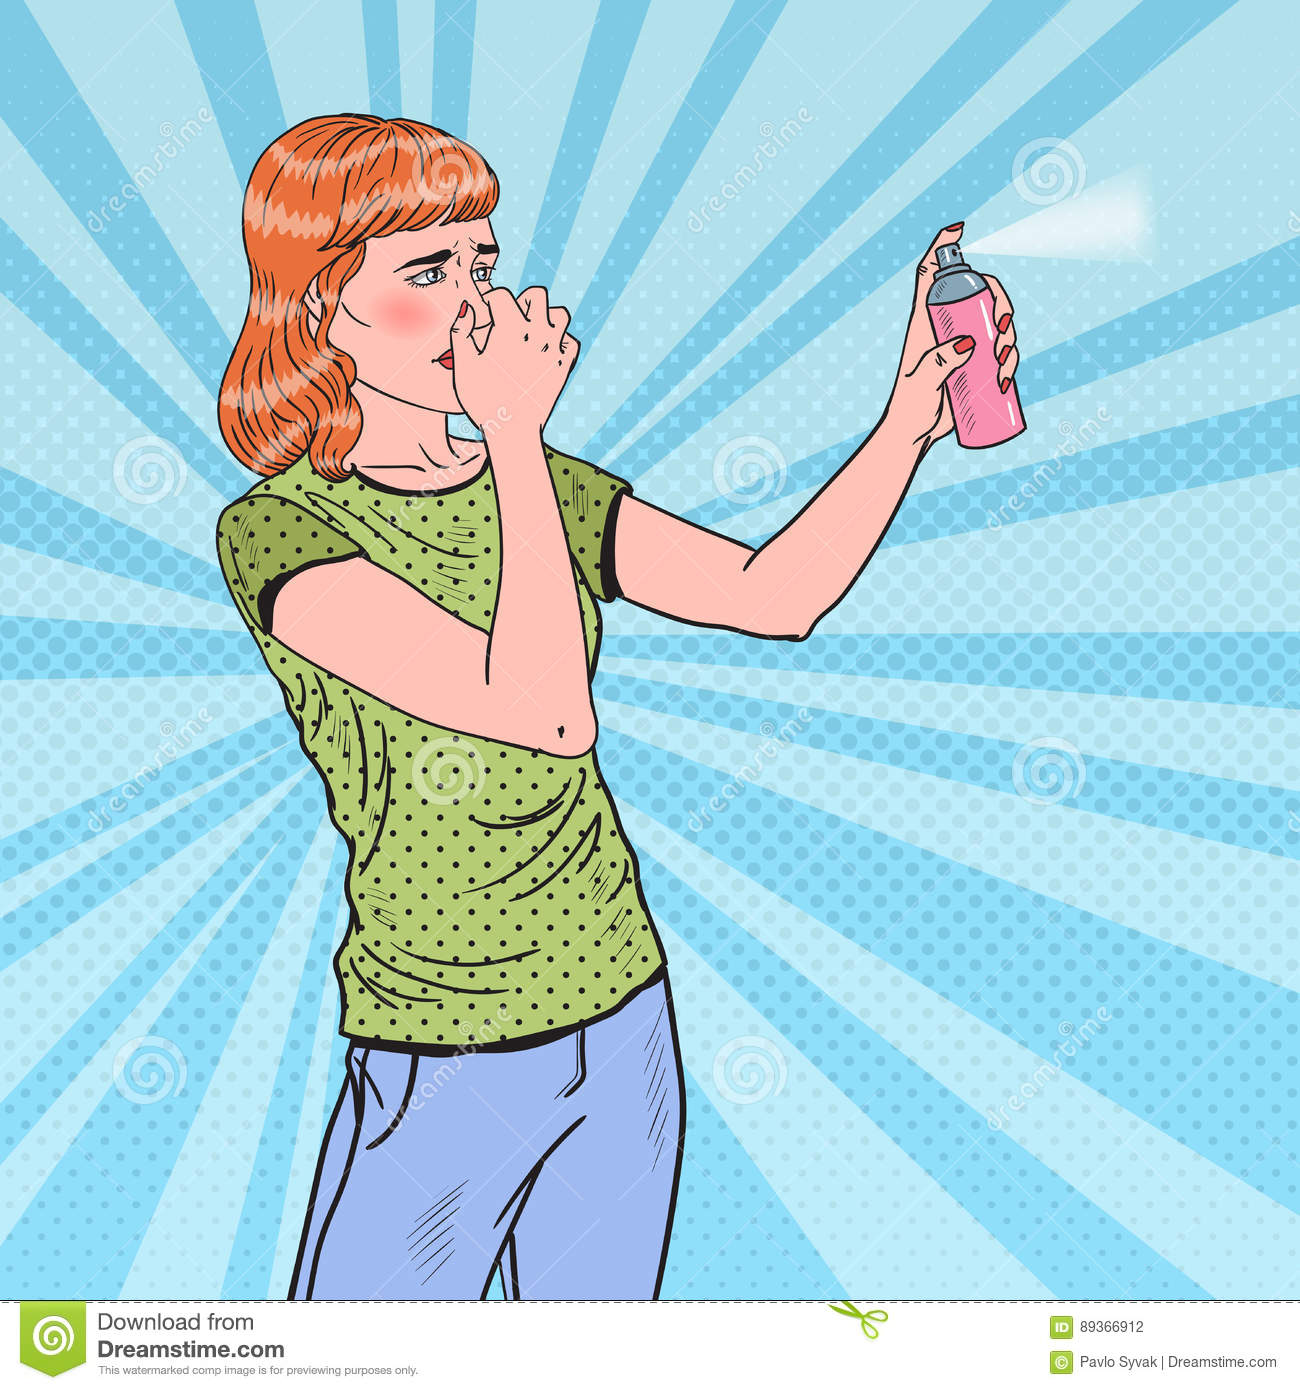 Canned Air Painting : Spraying cartoons illustrations vector stock images